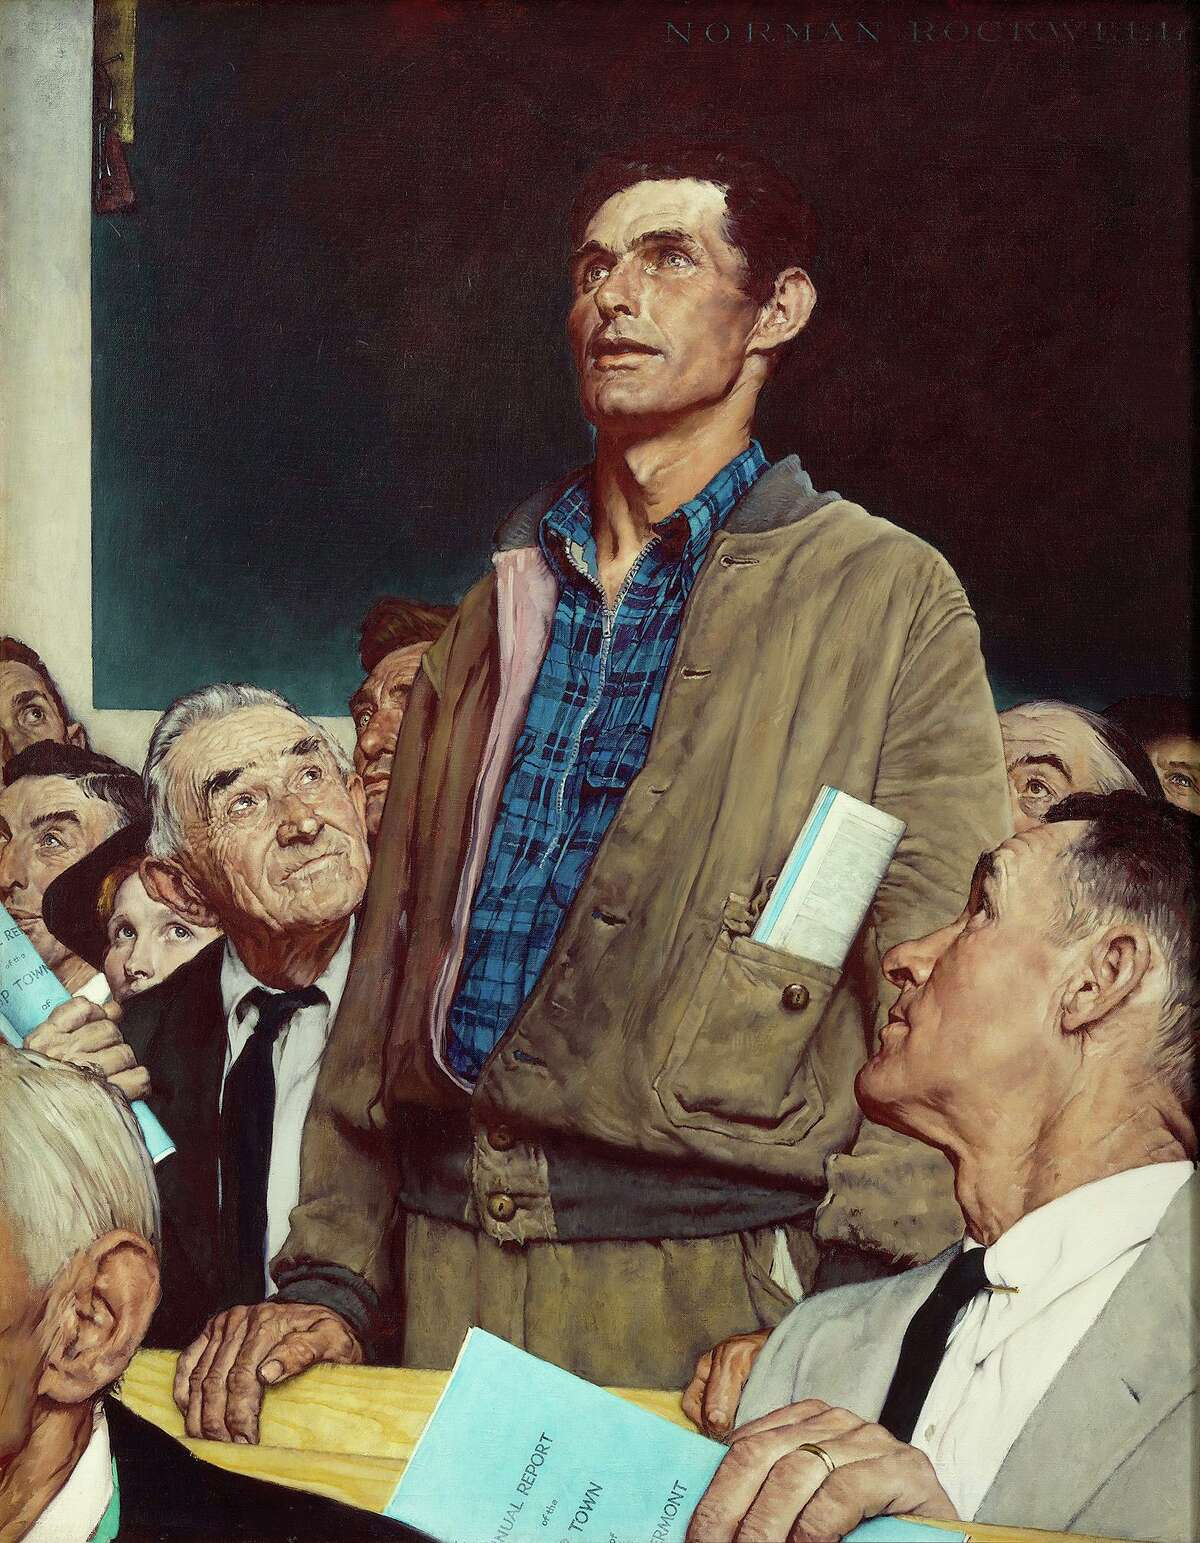 Norman Rockwell painted